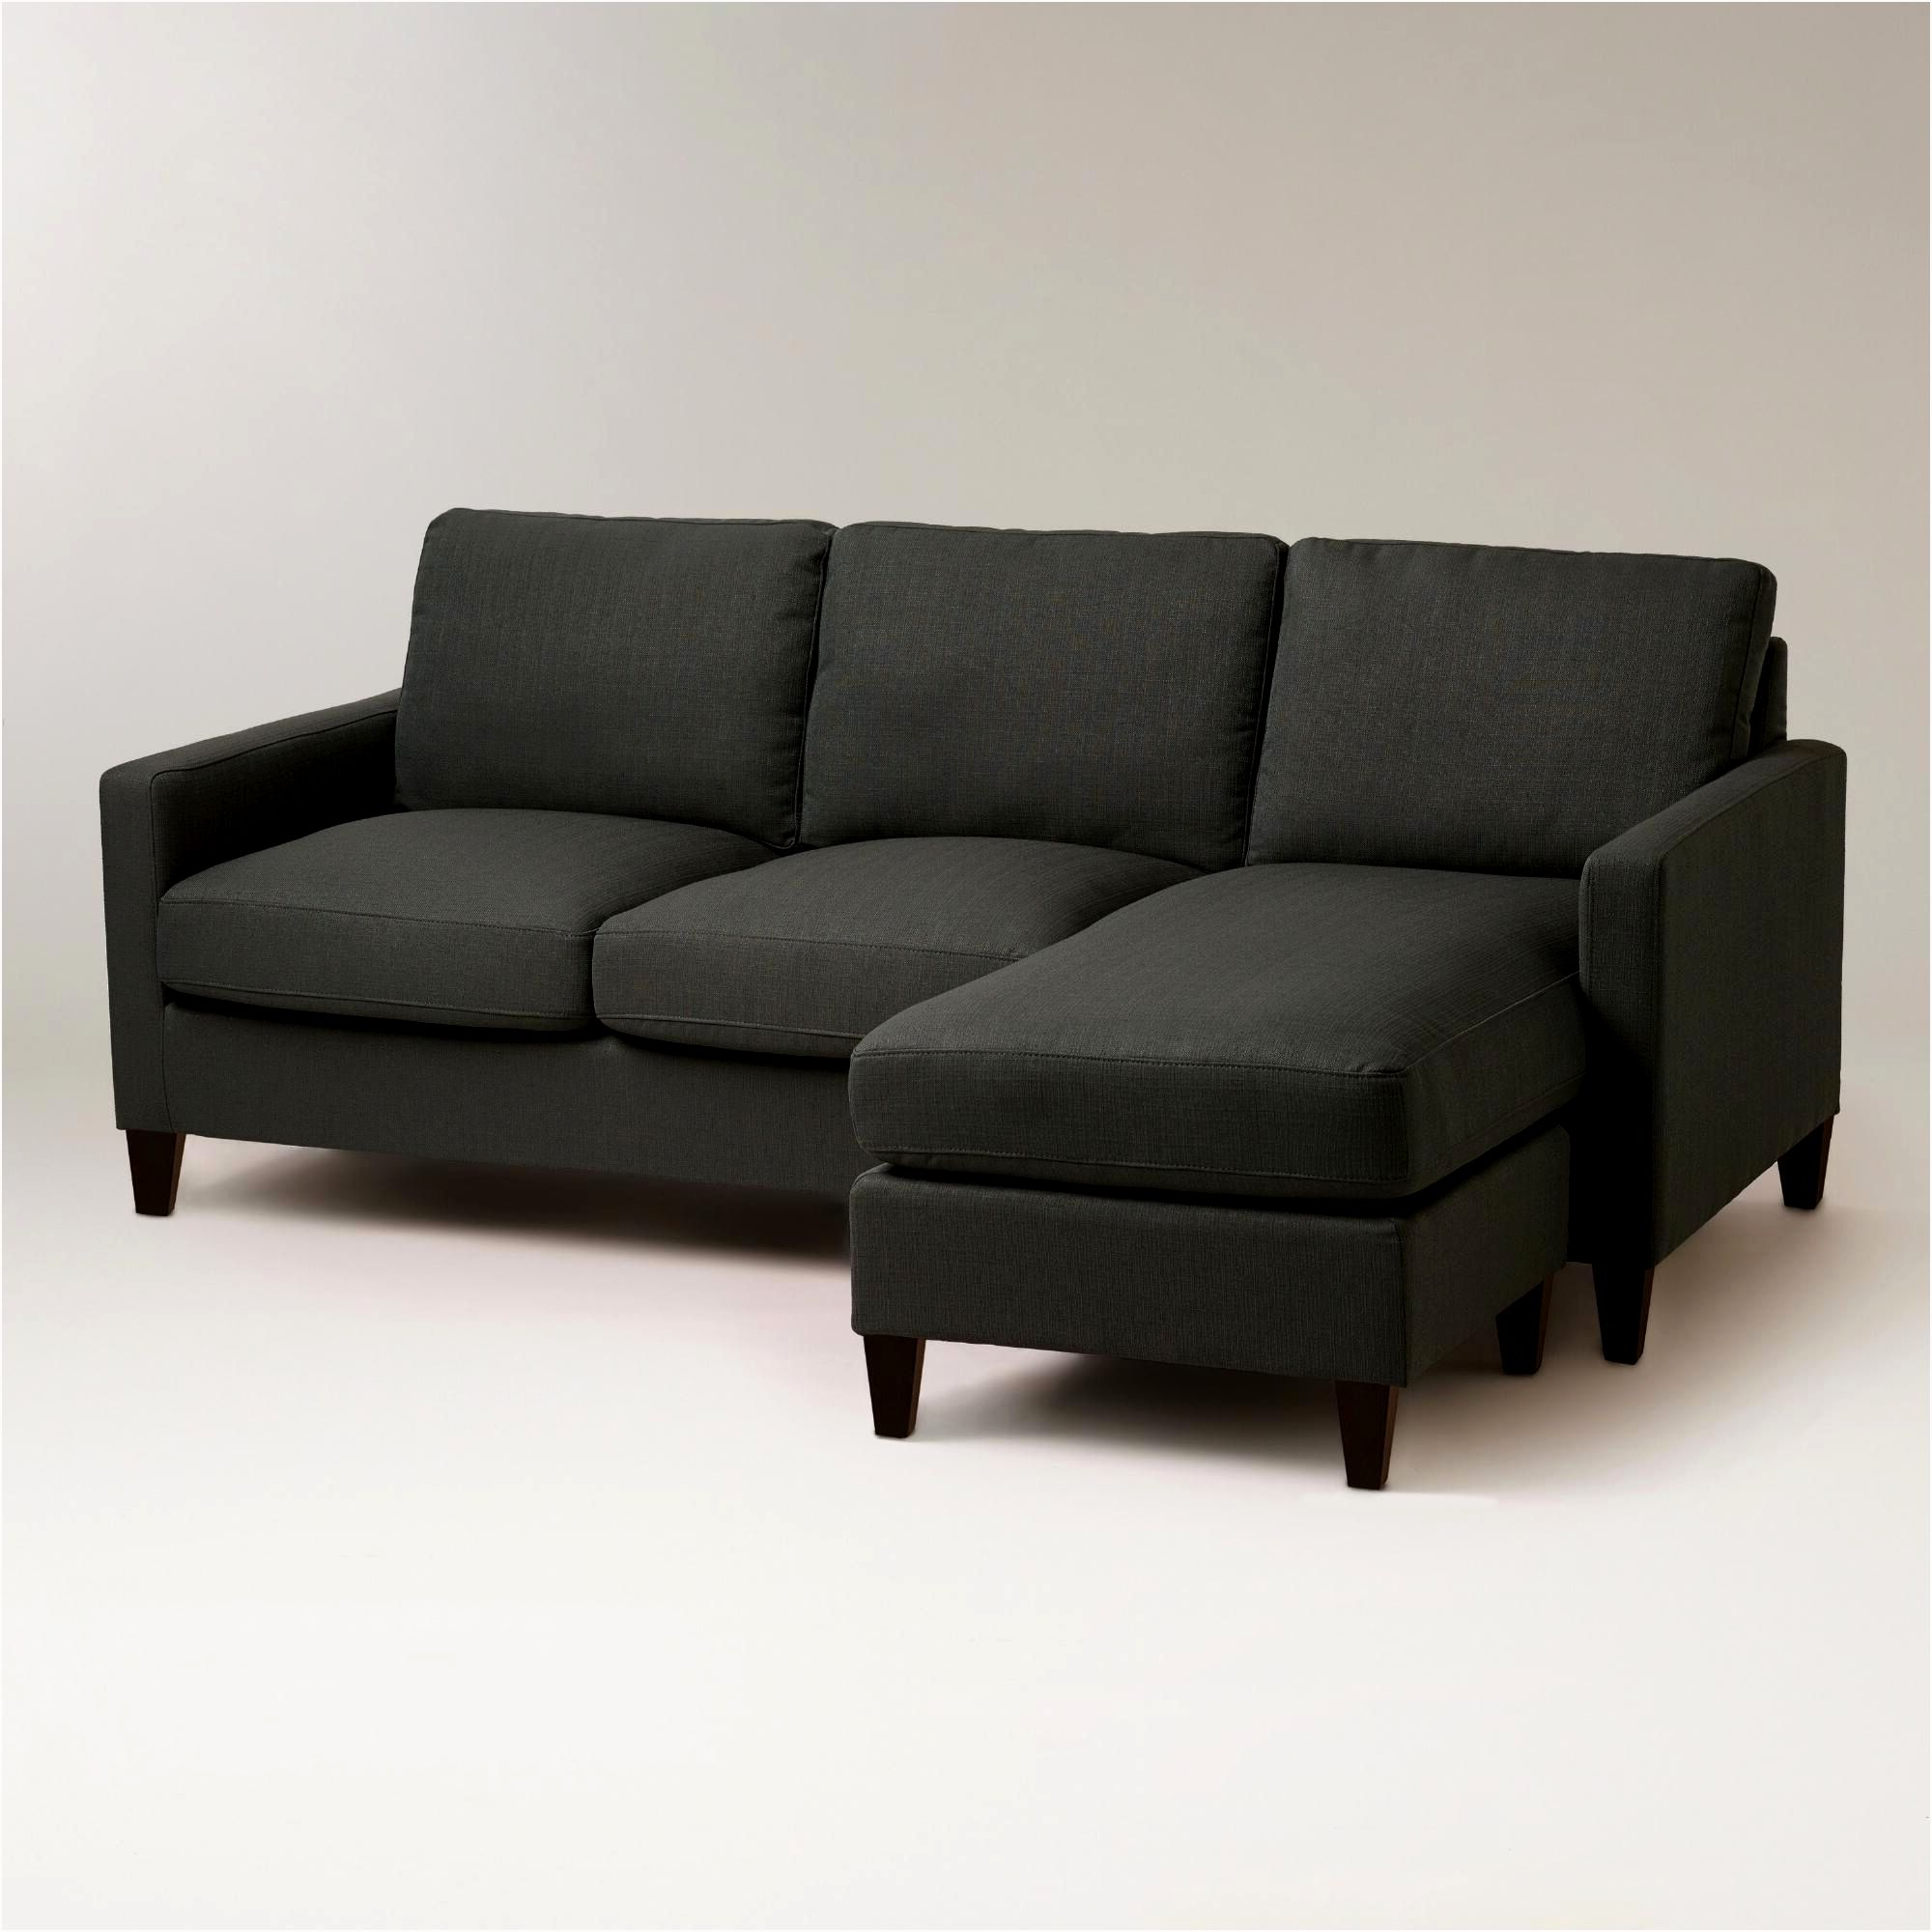 fresh ikea soderhamn sofa photograph-Superb Ikea soderhamn sofa Pattern